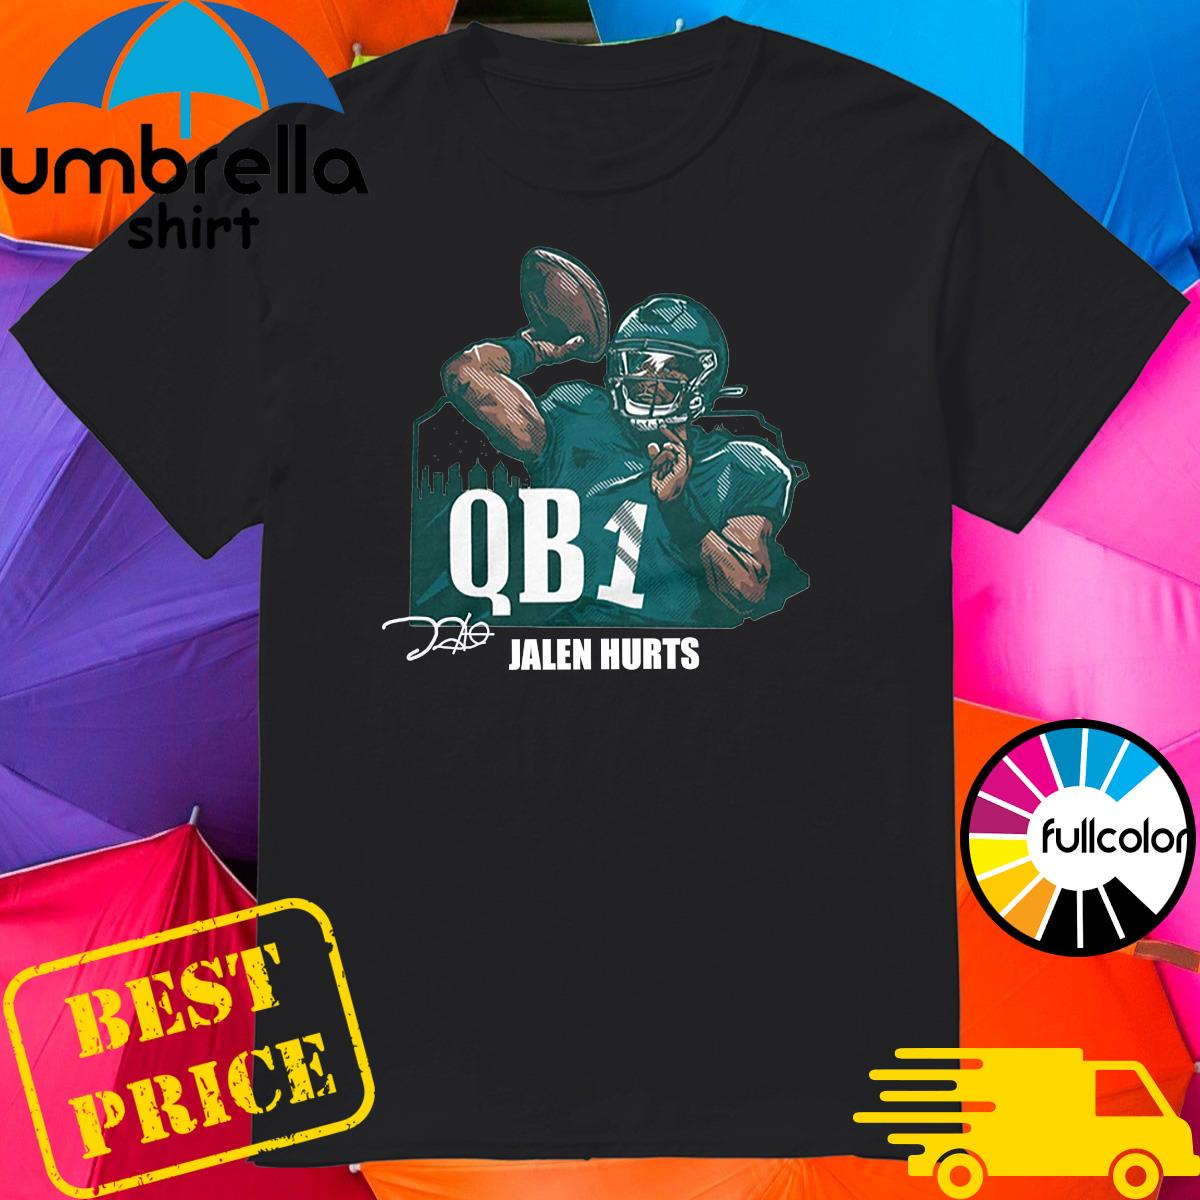 Official Jalen Hurts QB1 Shirt